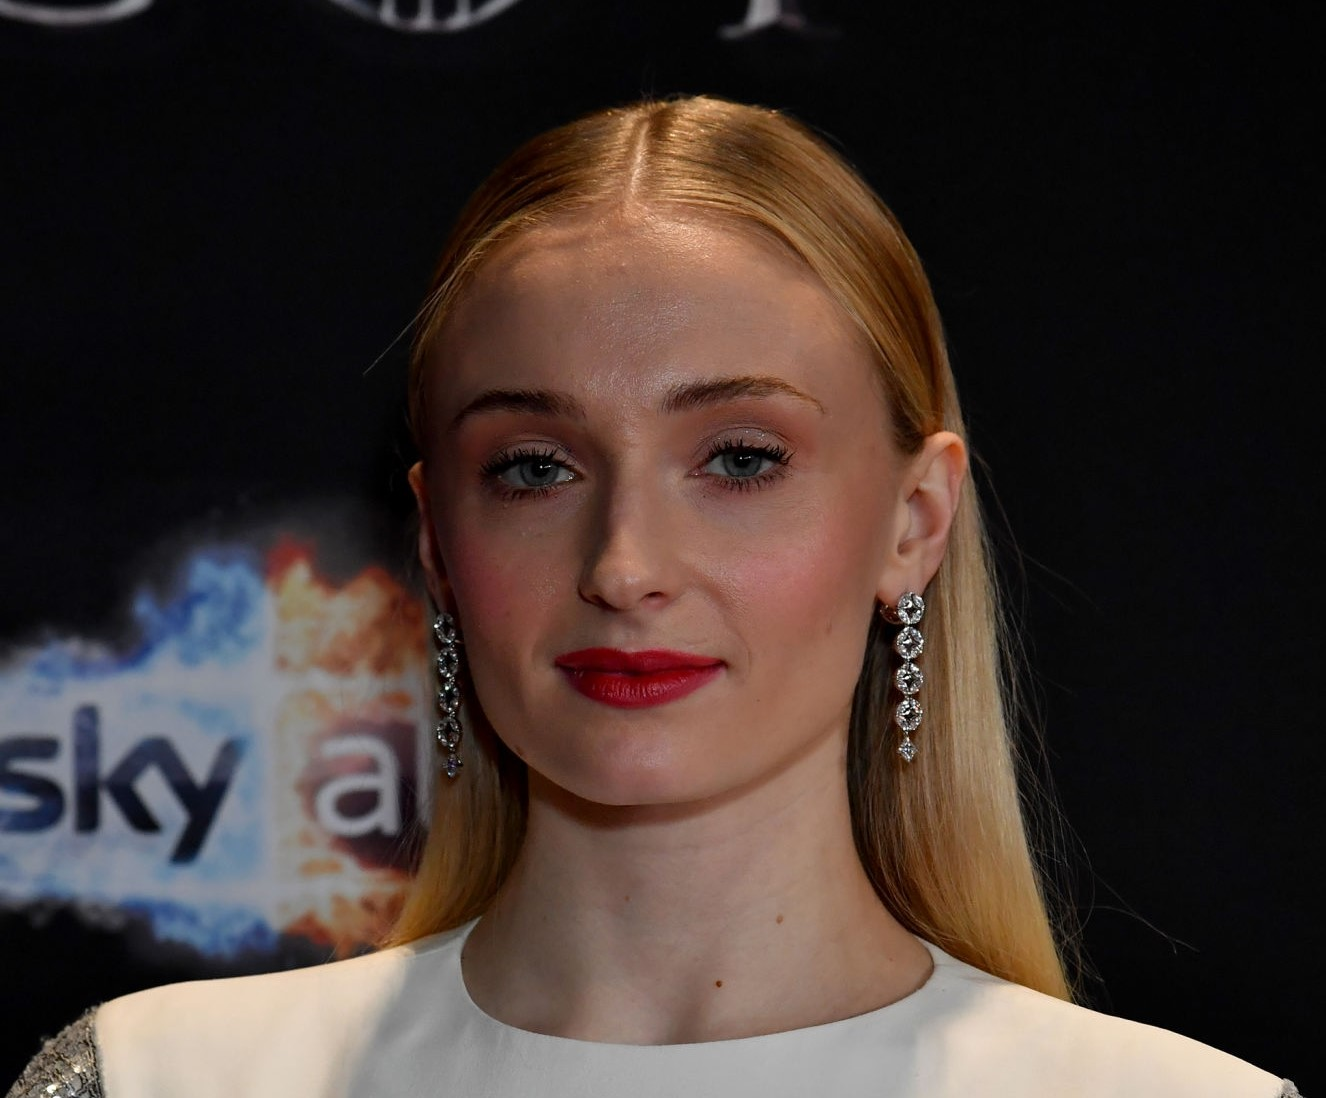 'Game of throne' Sophie Turner shows the glimpse of her diamond wedding ring